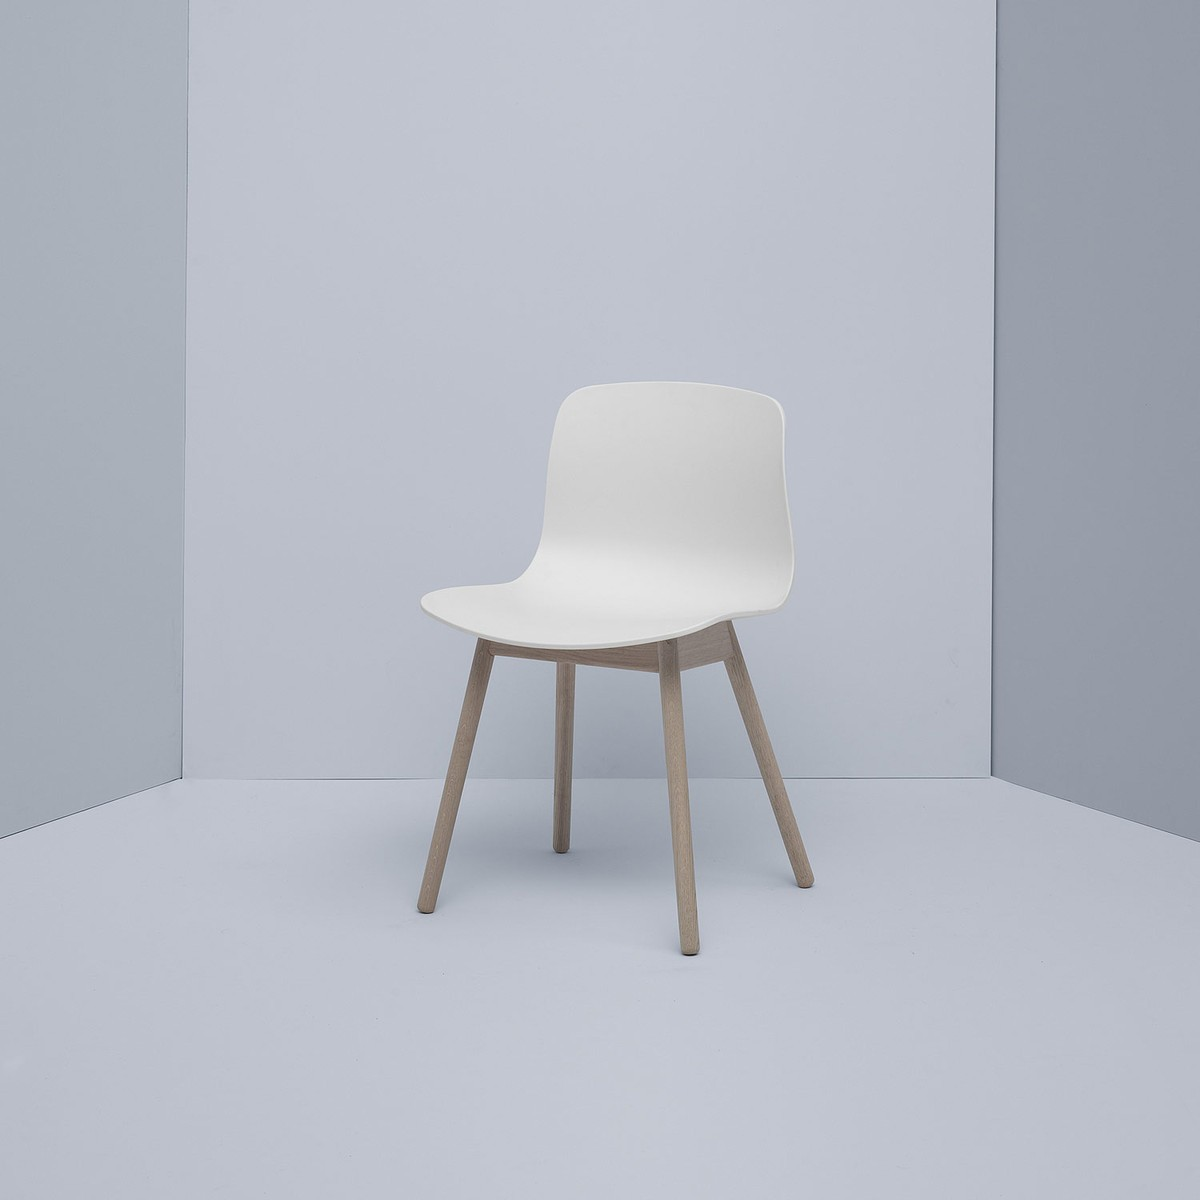 Mülleimer Design Hay About A Chair Aac 12 | Von Goodform.ch